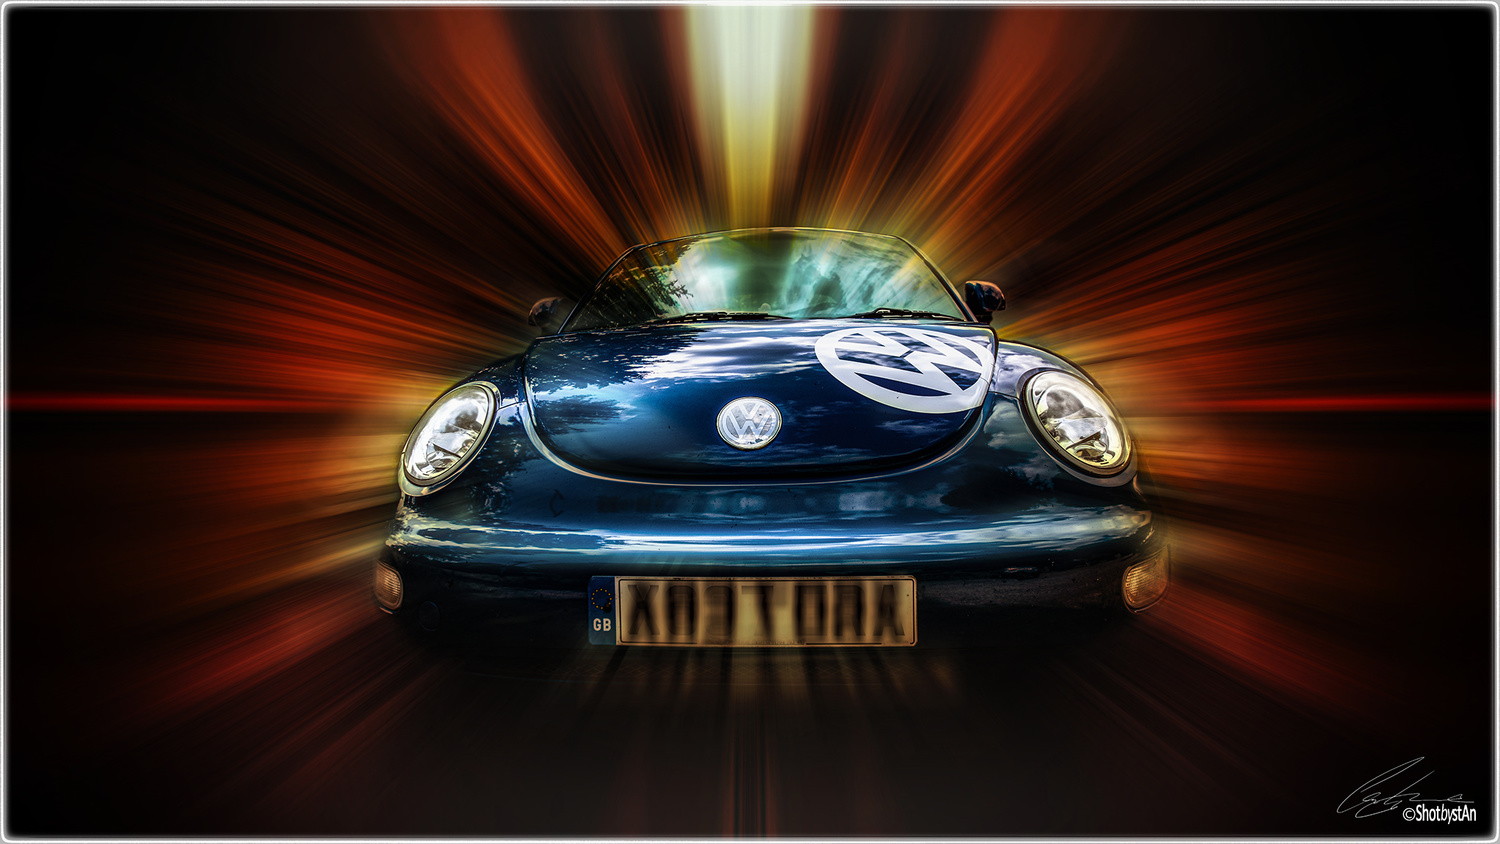 VW Beetle by Chris 'stAn' Hargrave